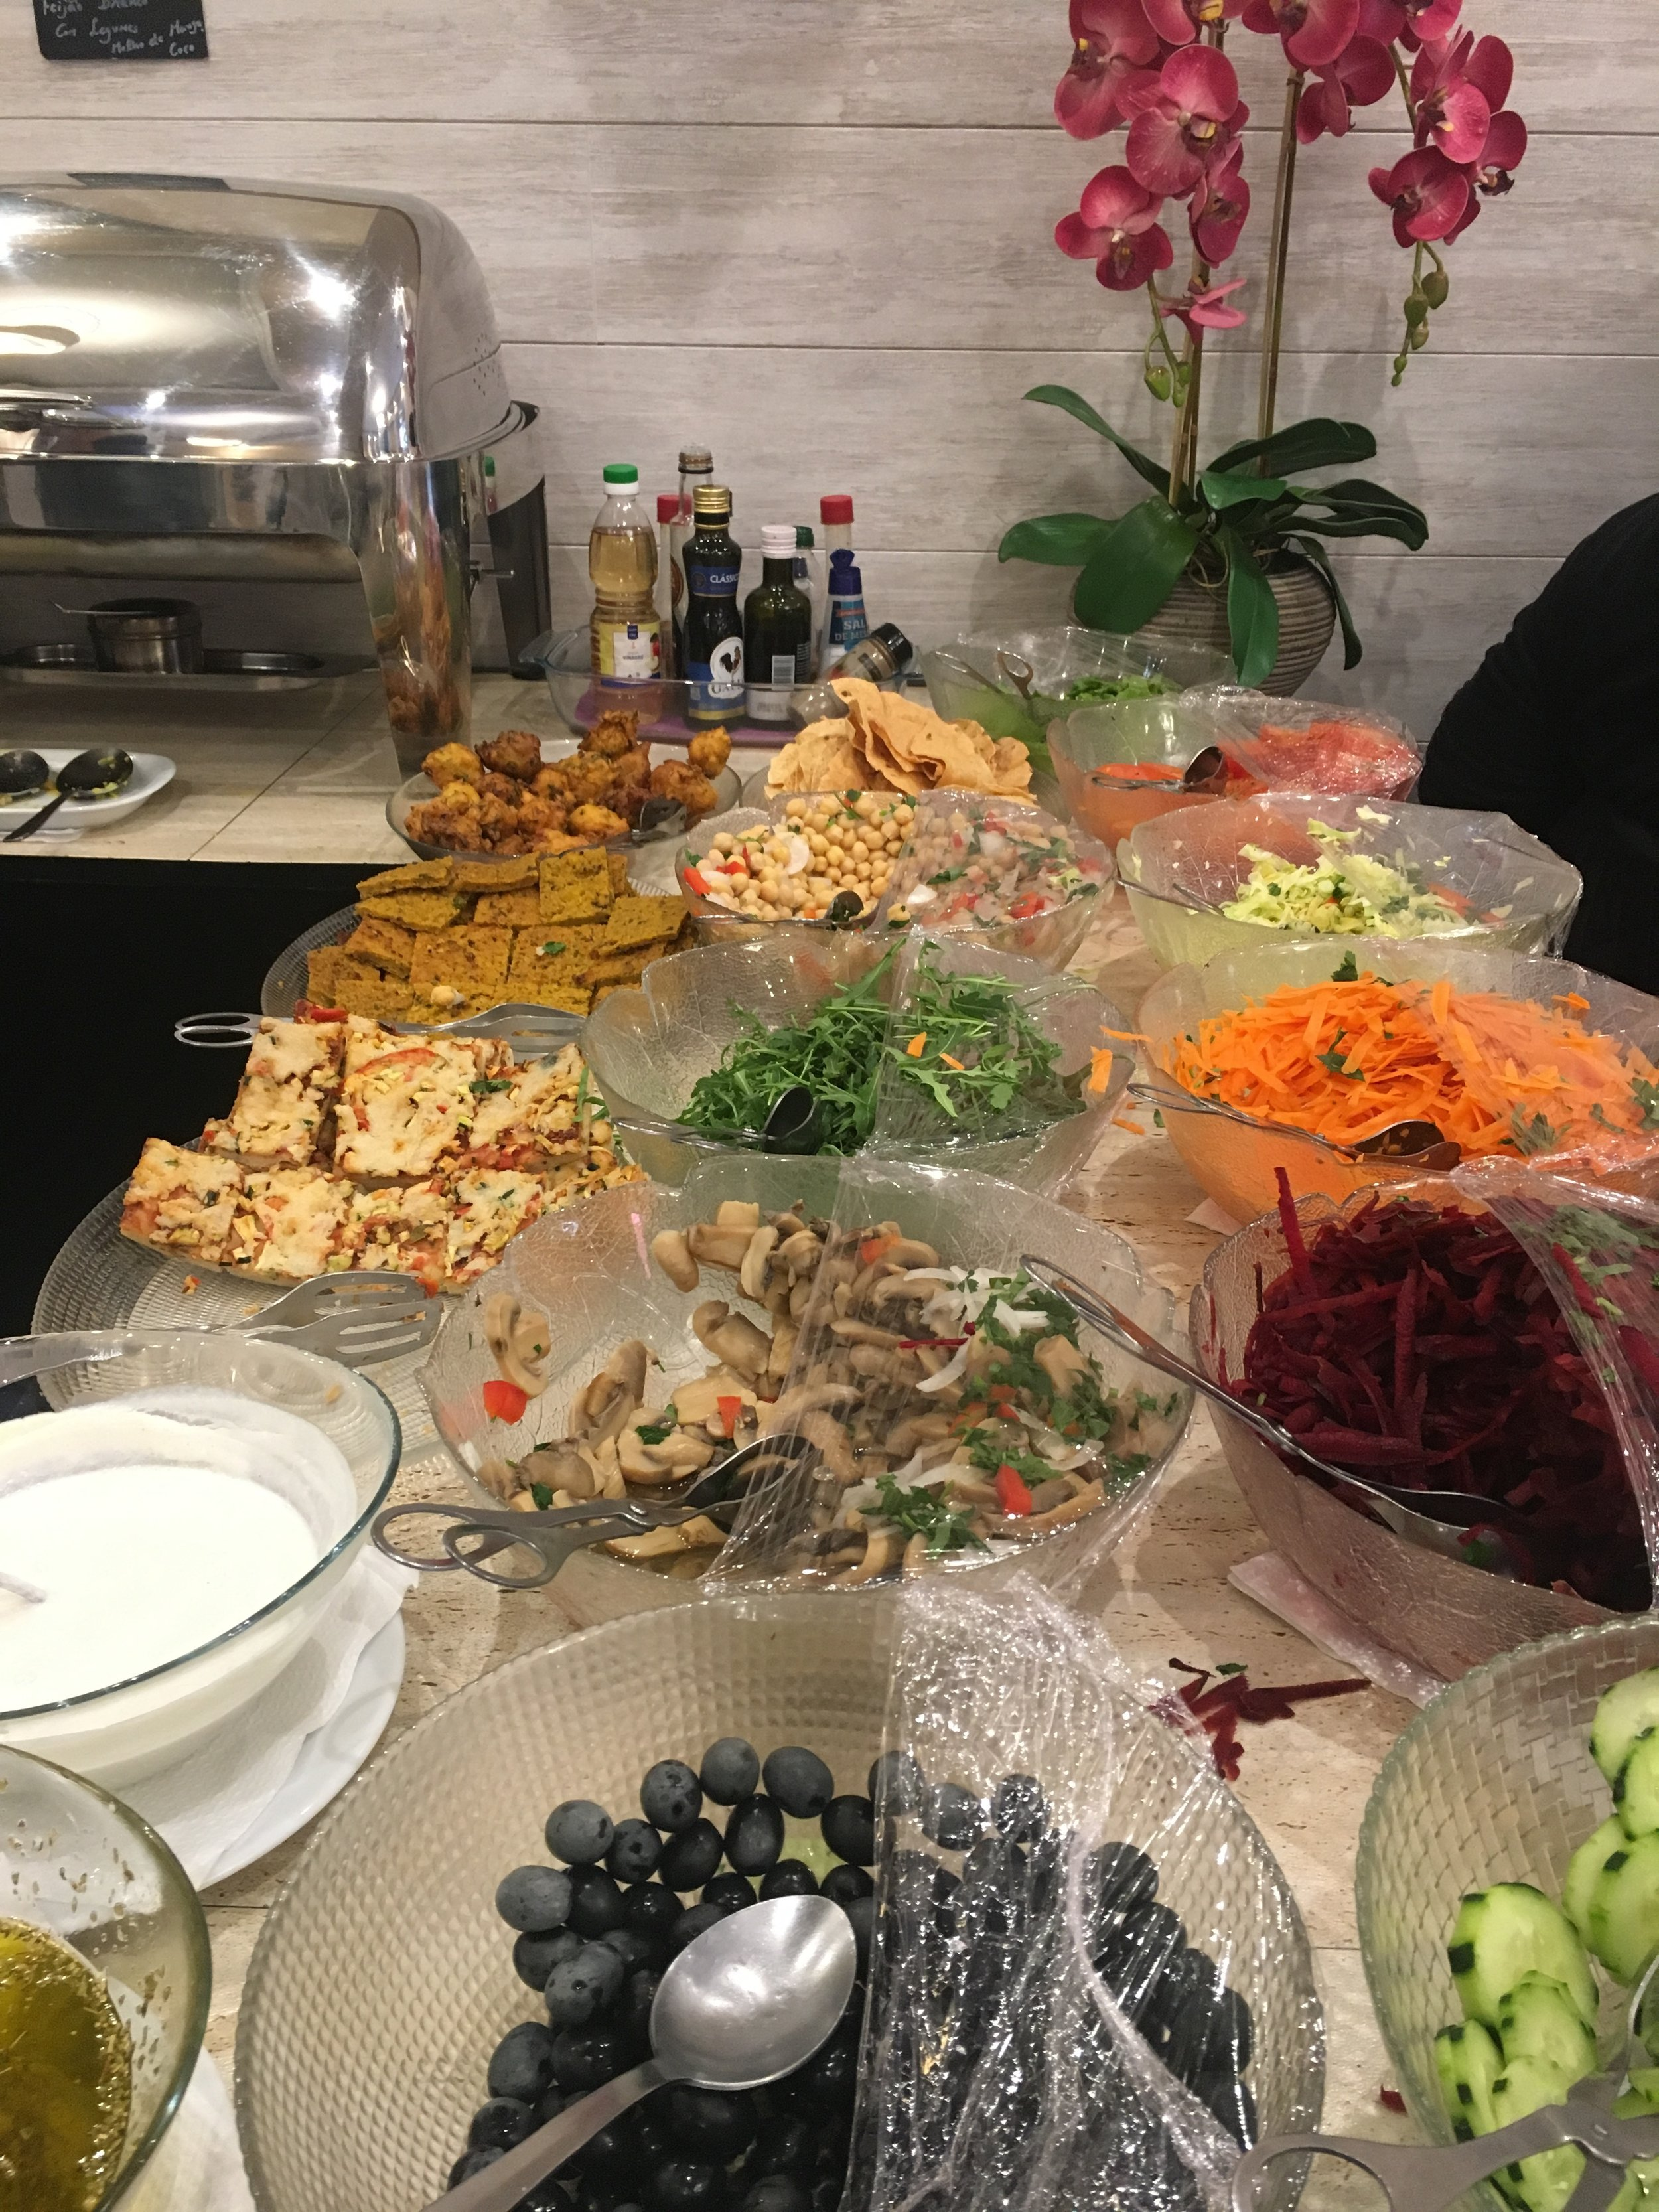 Gobs of food at the buffet